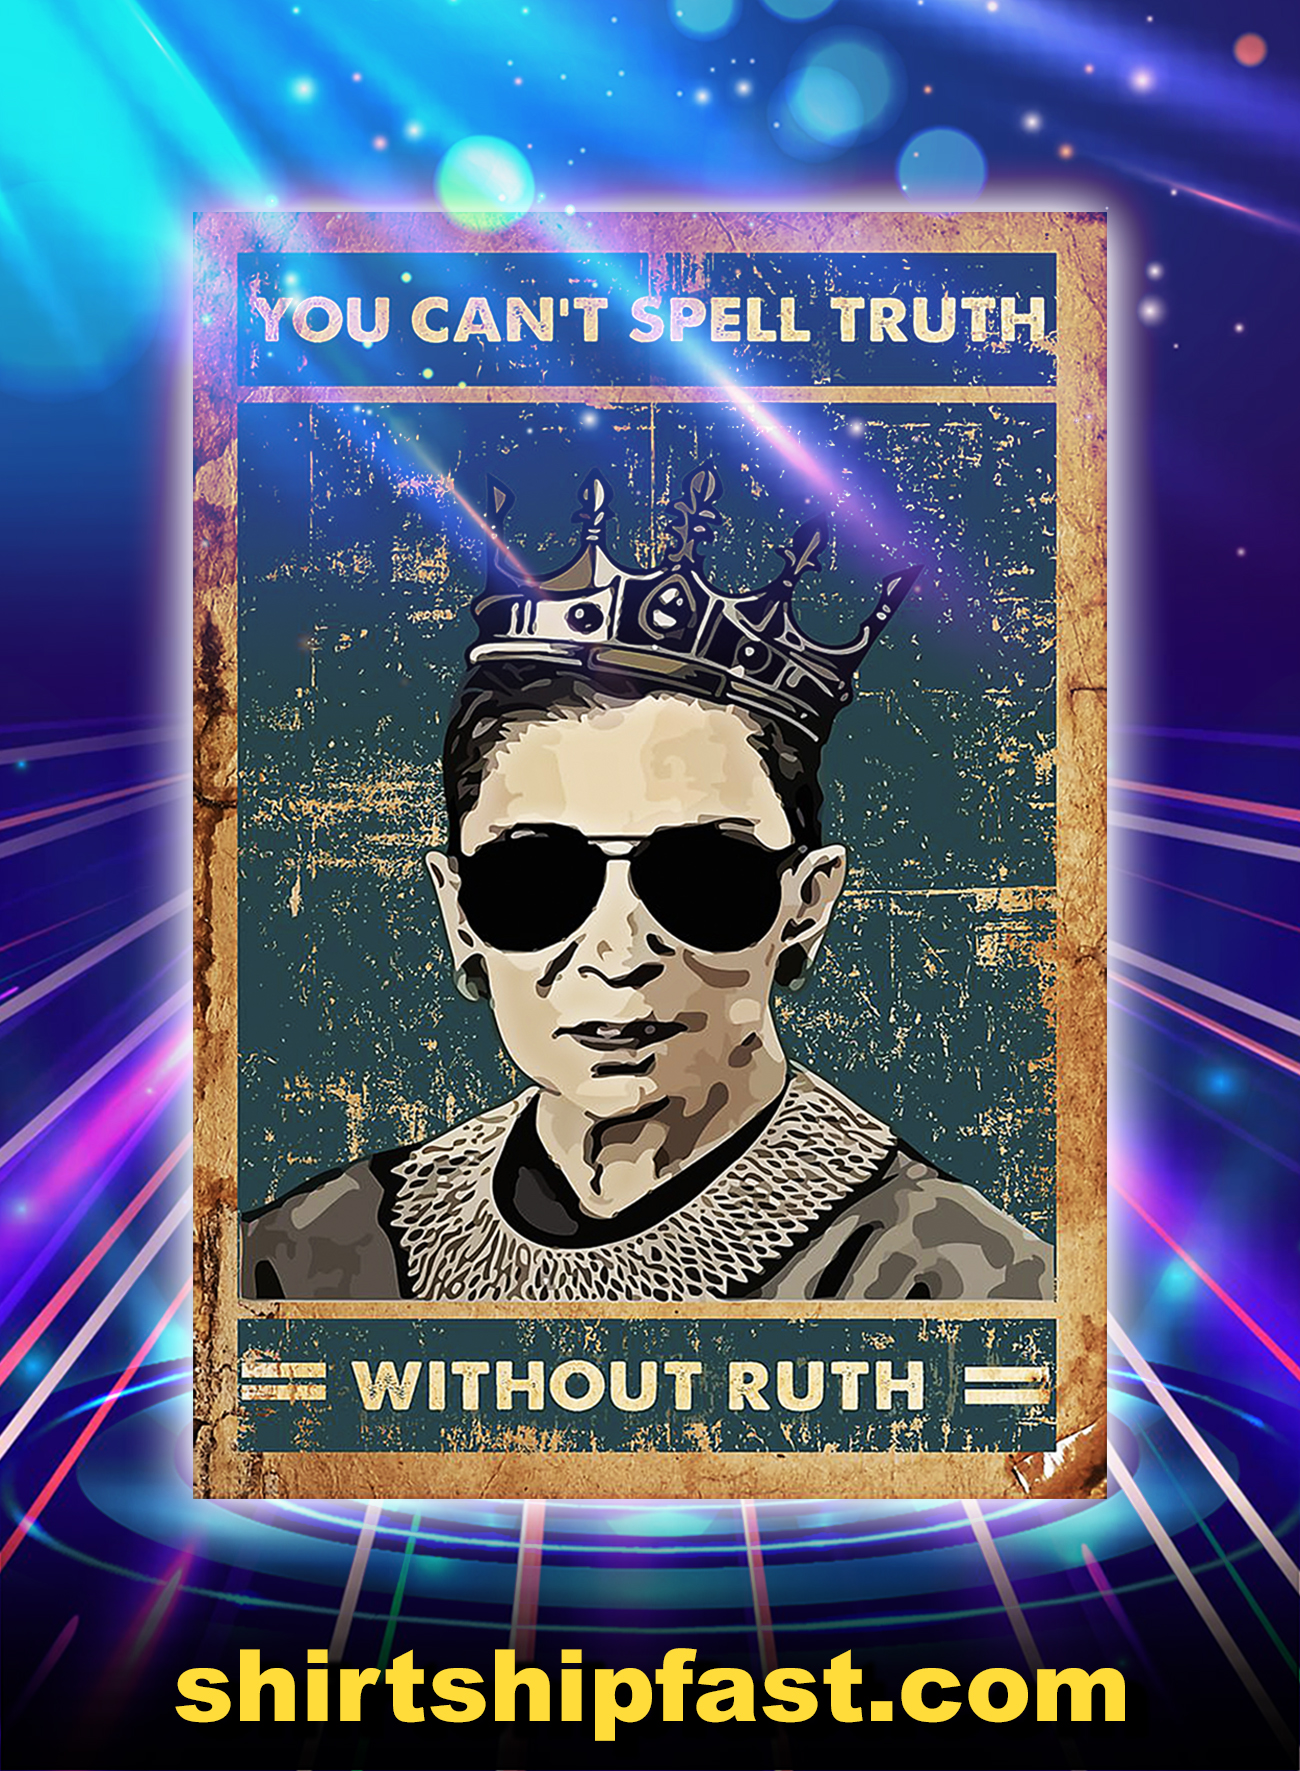 You can't spell truth without ruth poster - A1